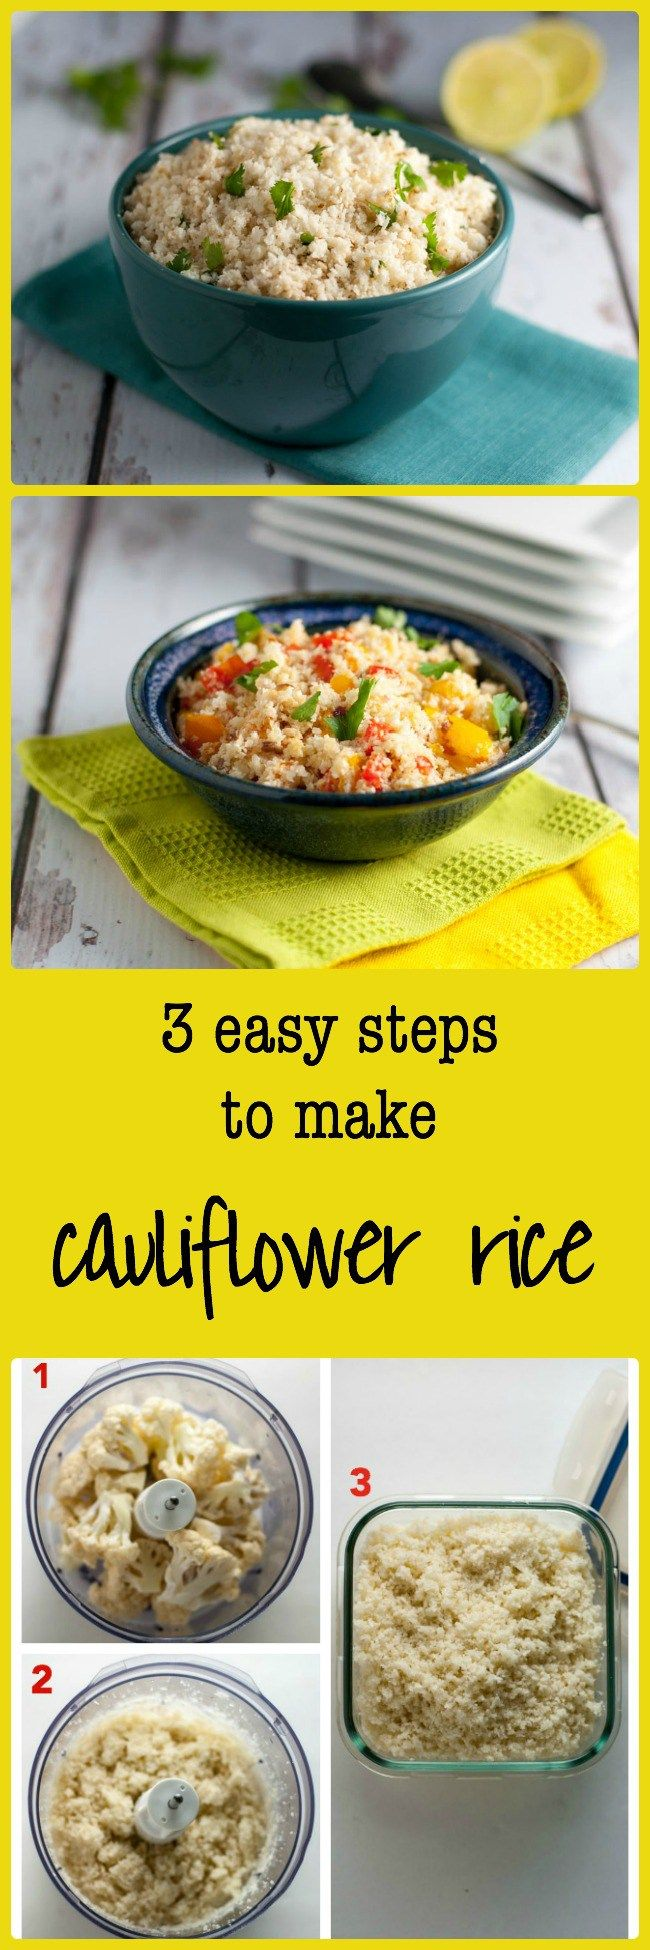 How to Make Cauliflower Rice. Here is a low-carb alternative to regular rice. You won't believe just how good it is until you try it! 3 easy steps. Click the image to find suggestions for different ways to serve it.